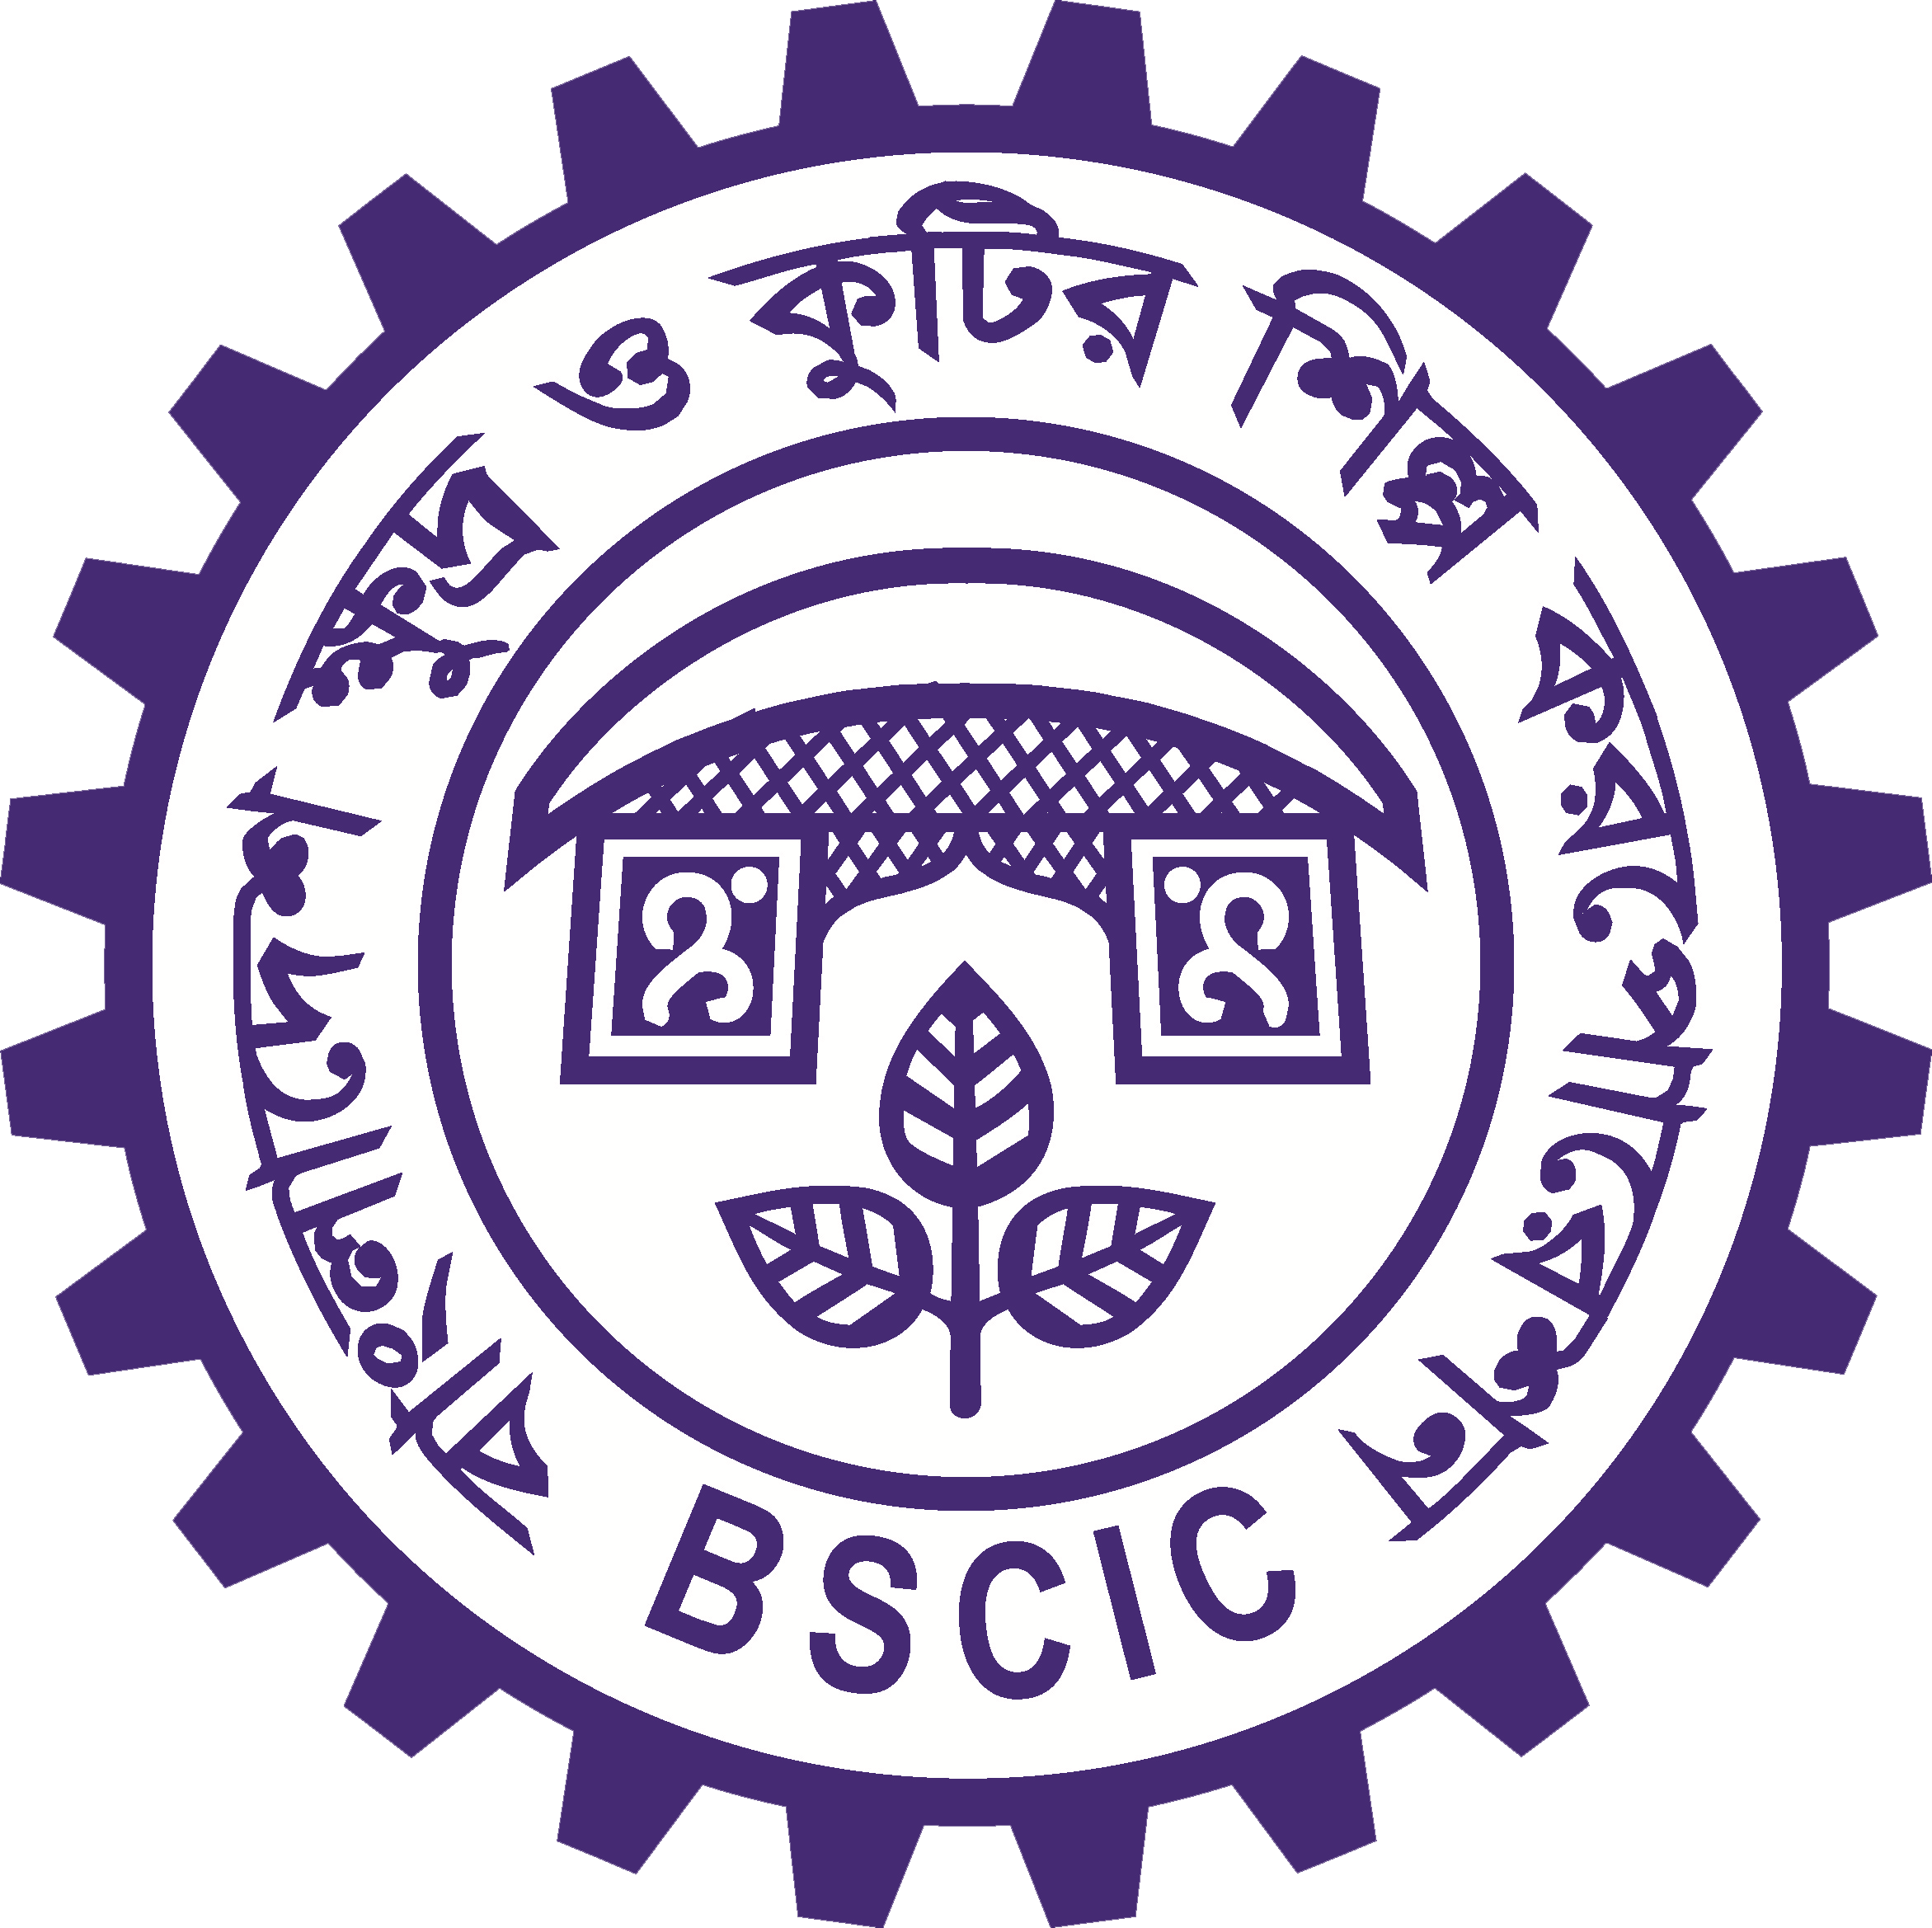 Bangladesh Small and Cottage Industries Corporation (BSCIC)